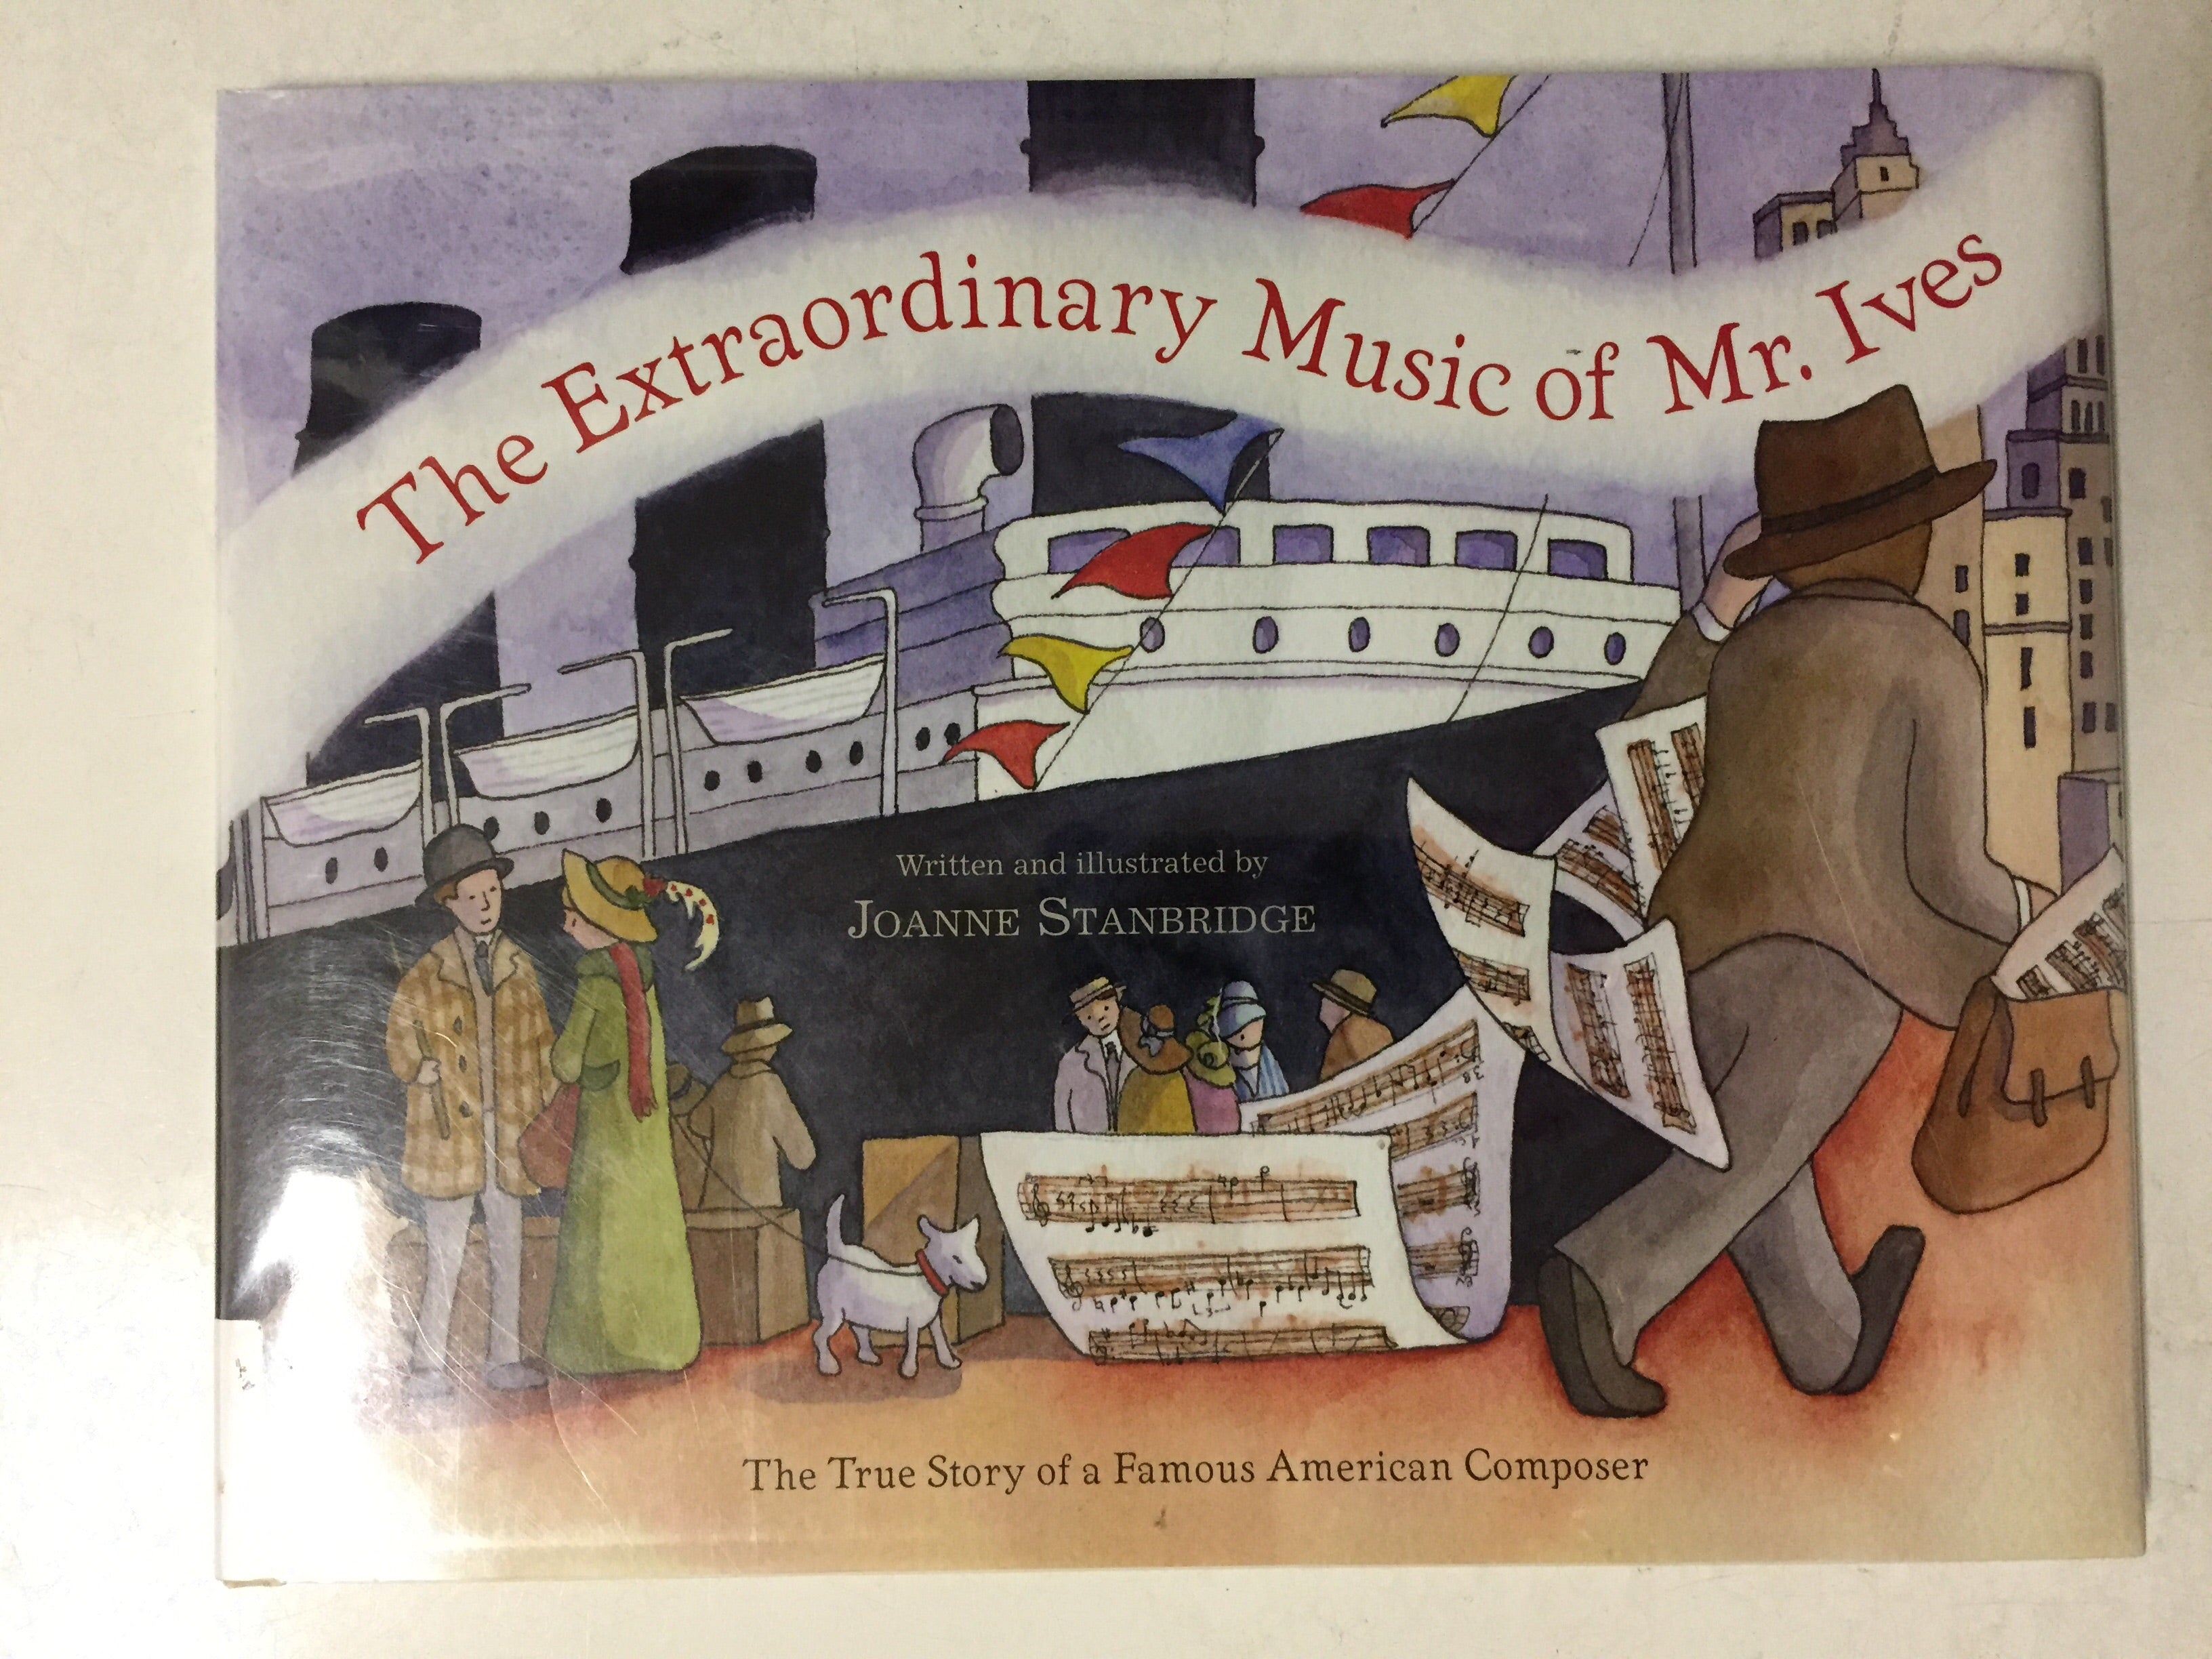 The Extraordinary Music of Mr. Ives The True Story of a Famous American Composer - Slickcatbooks